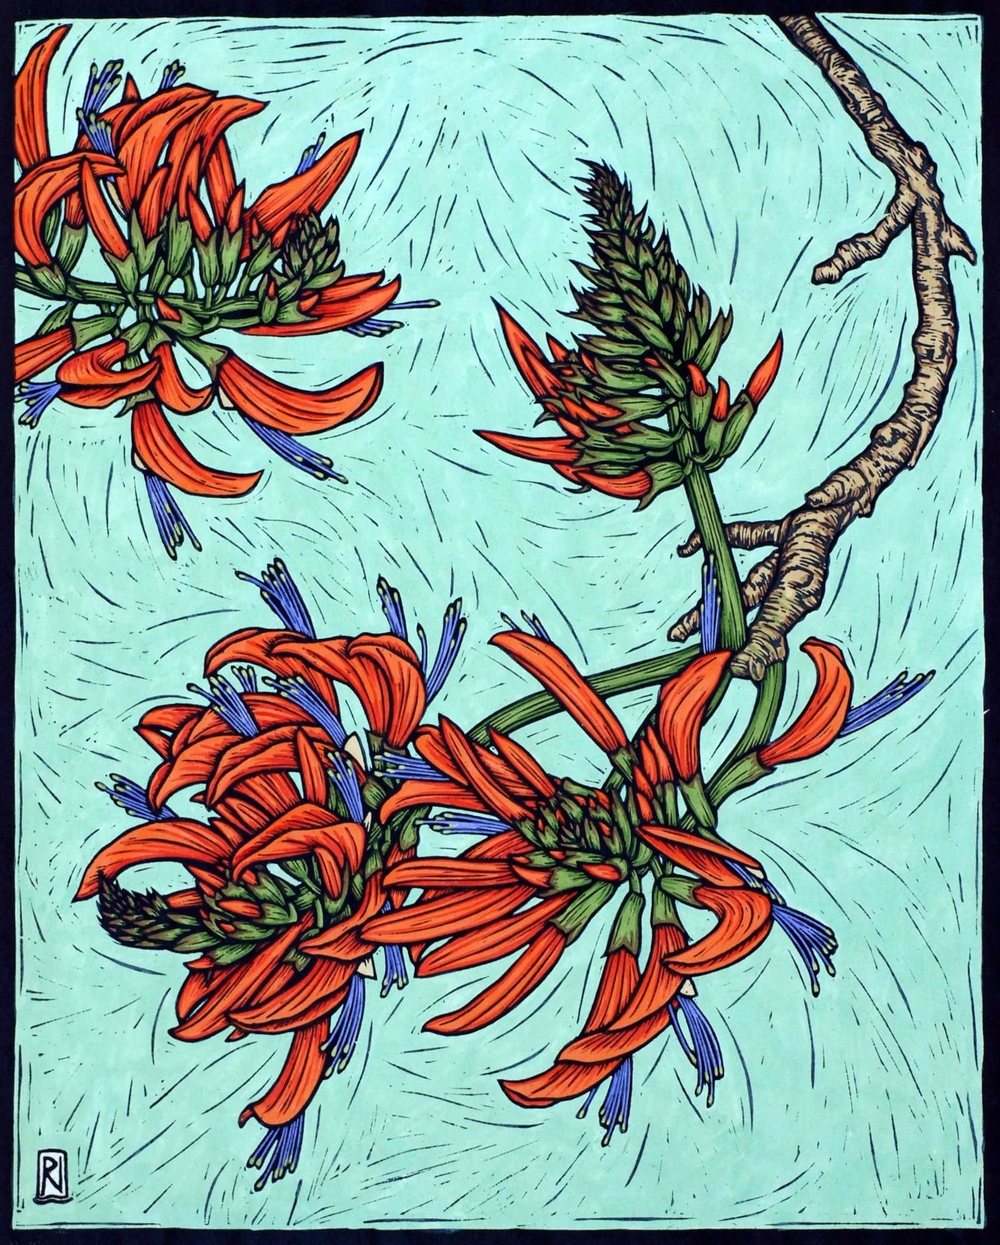 CORAL TREE  43.5 X 35.5 CM EDITION OF 50  HAND COLOURED LINOCUT ON HANDMADE JAPANESE PAPER  $1,100